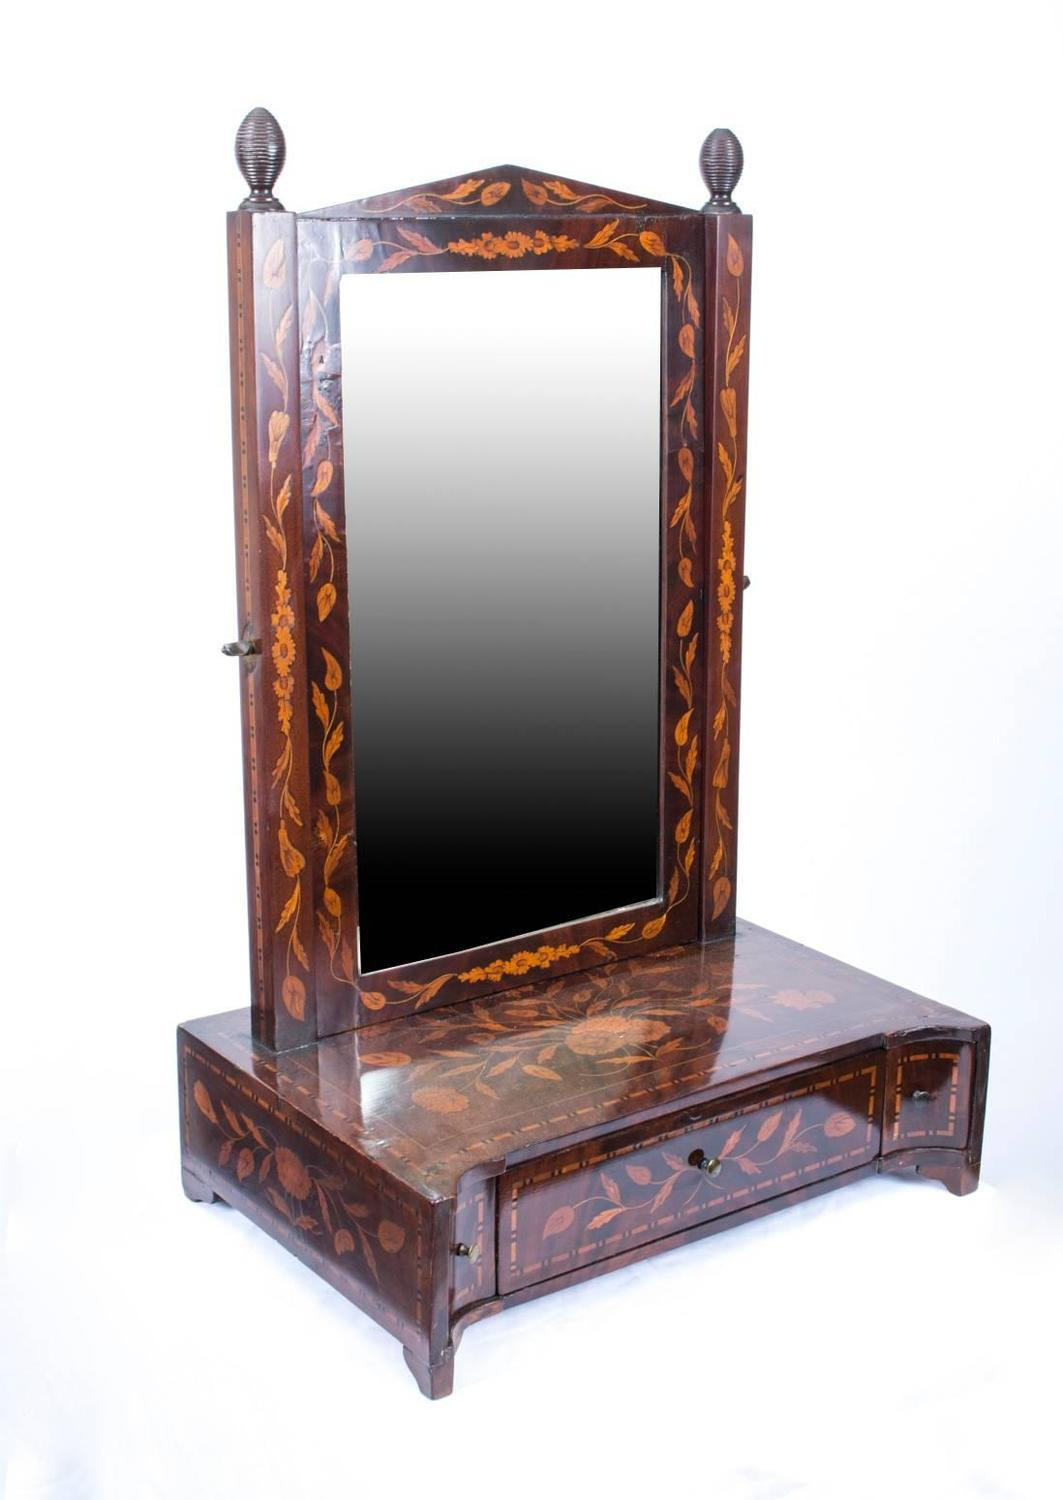 Antique mirrored dressing table - Antique Dutch Marquetry Dressing Table Mirror Circa 1780 For Sale At 1stdibs